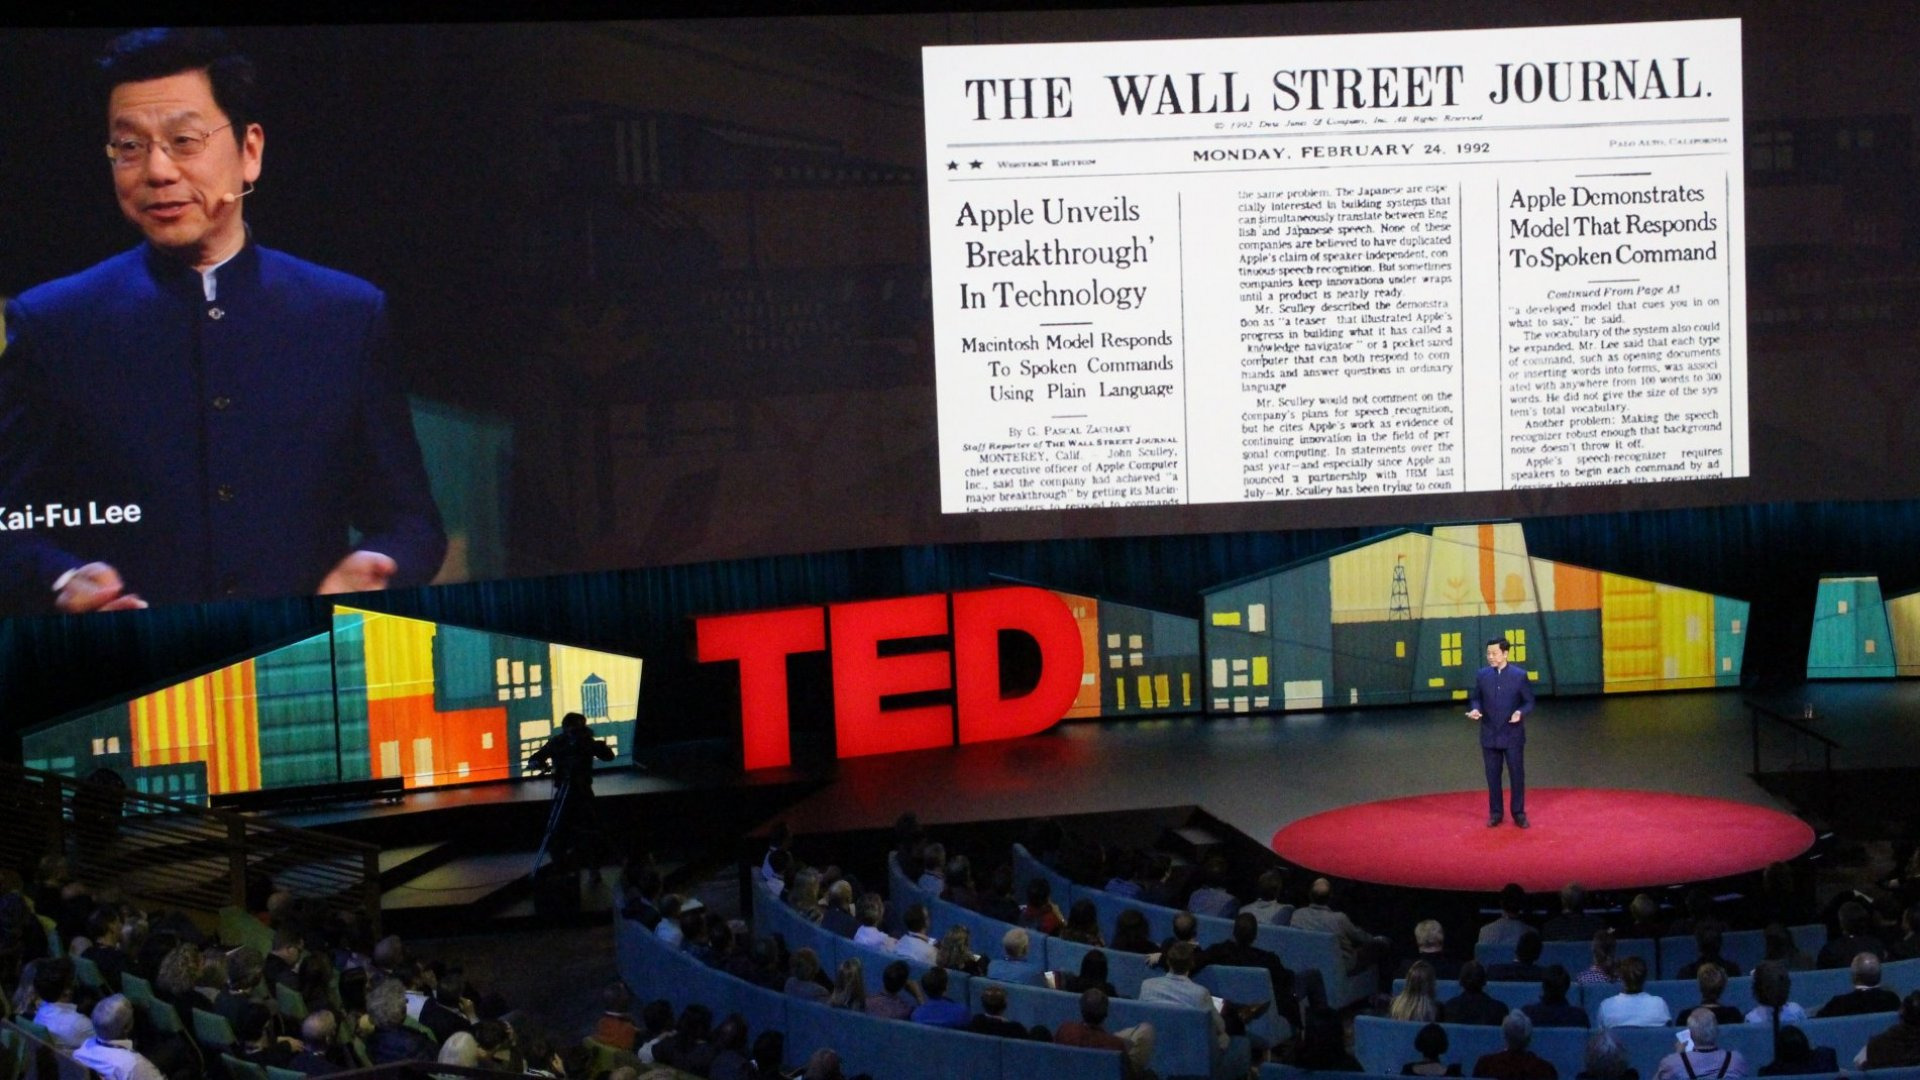 Want to Do a TED Talk? Here Are 3 Things Speakers Have in Common